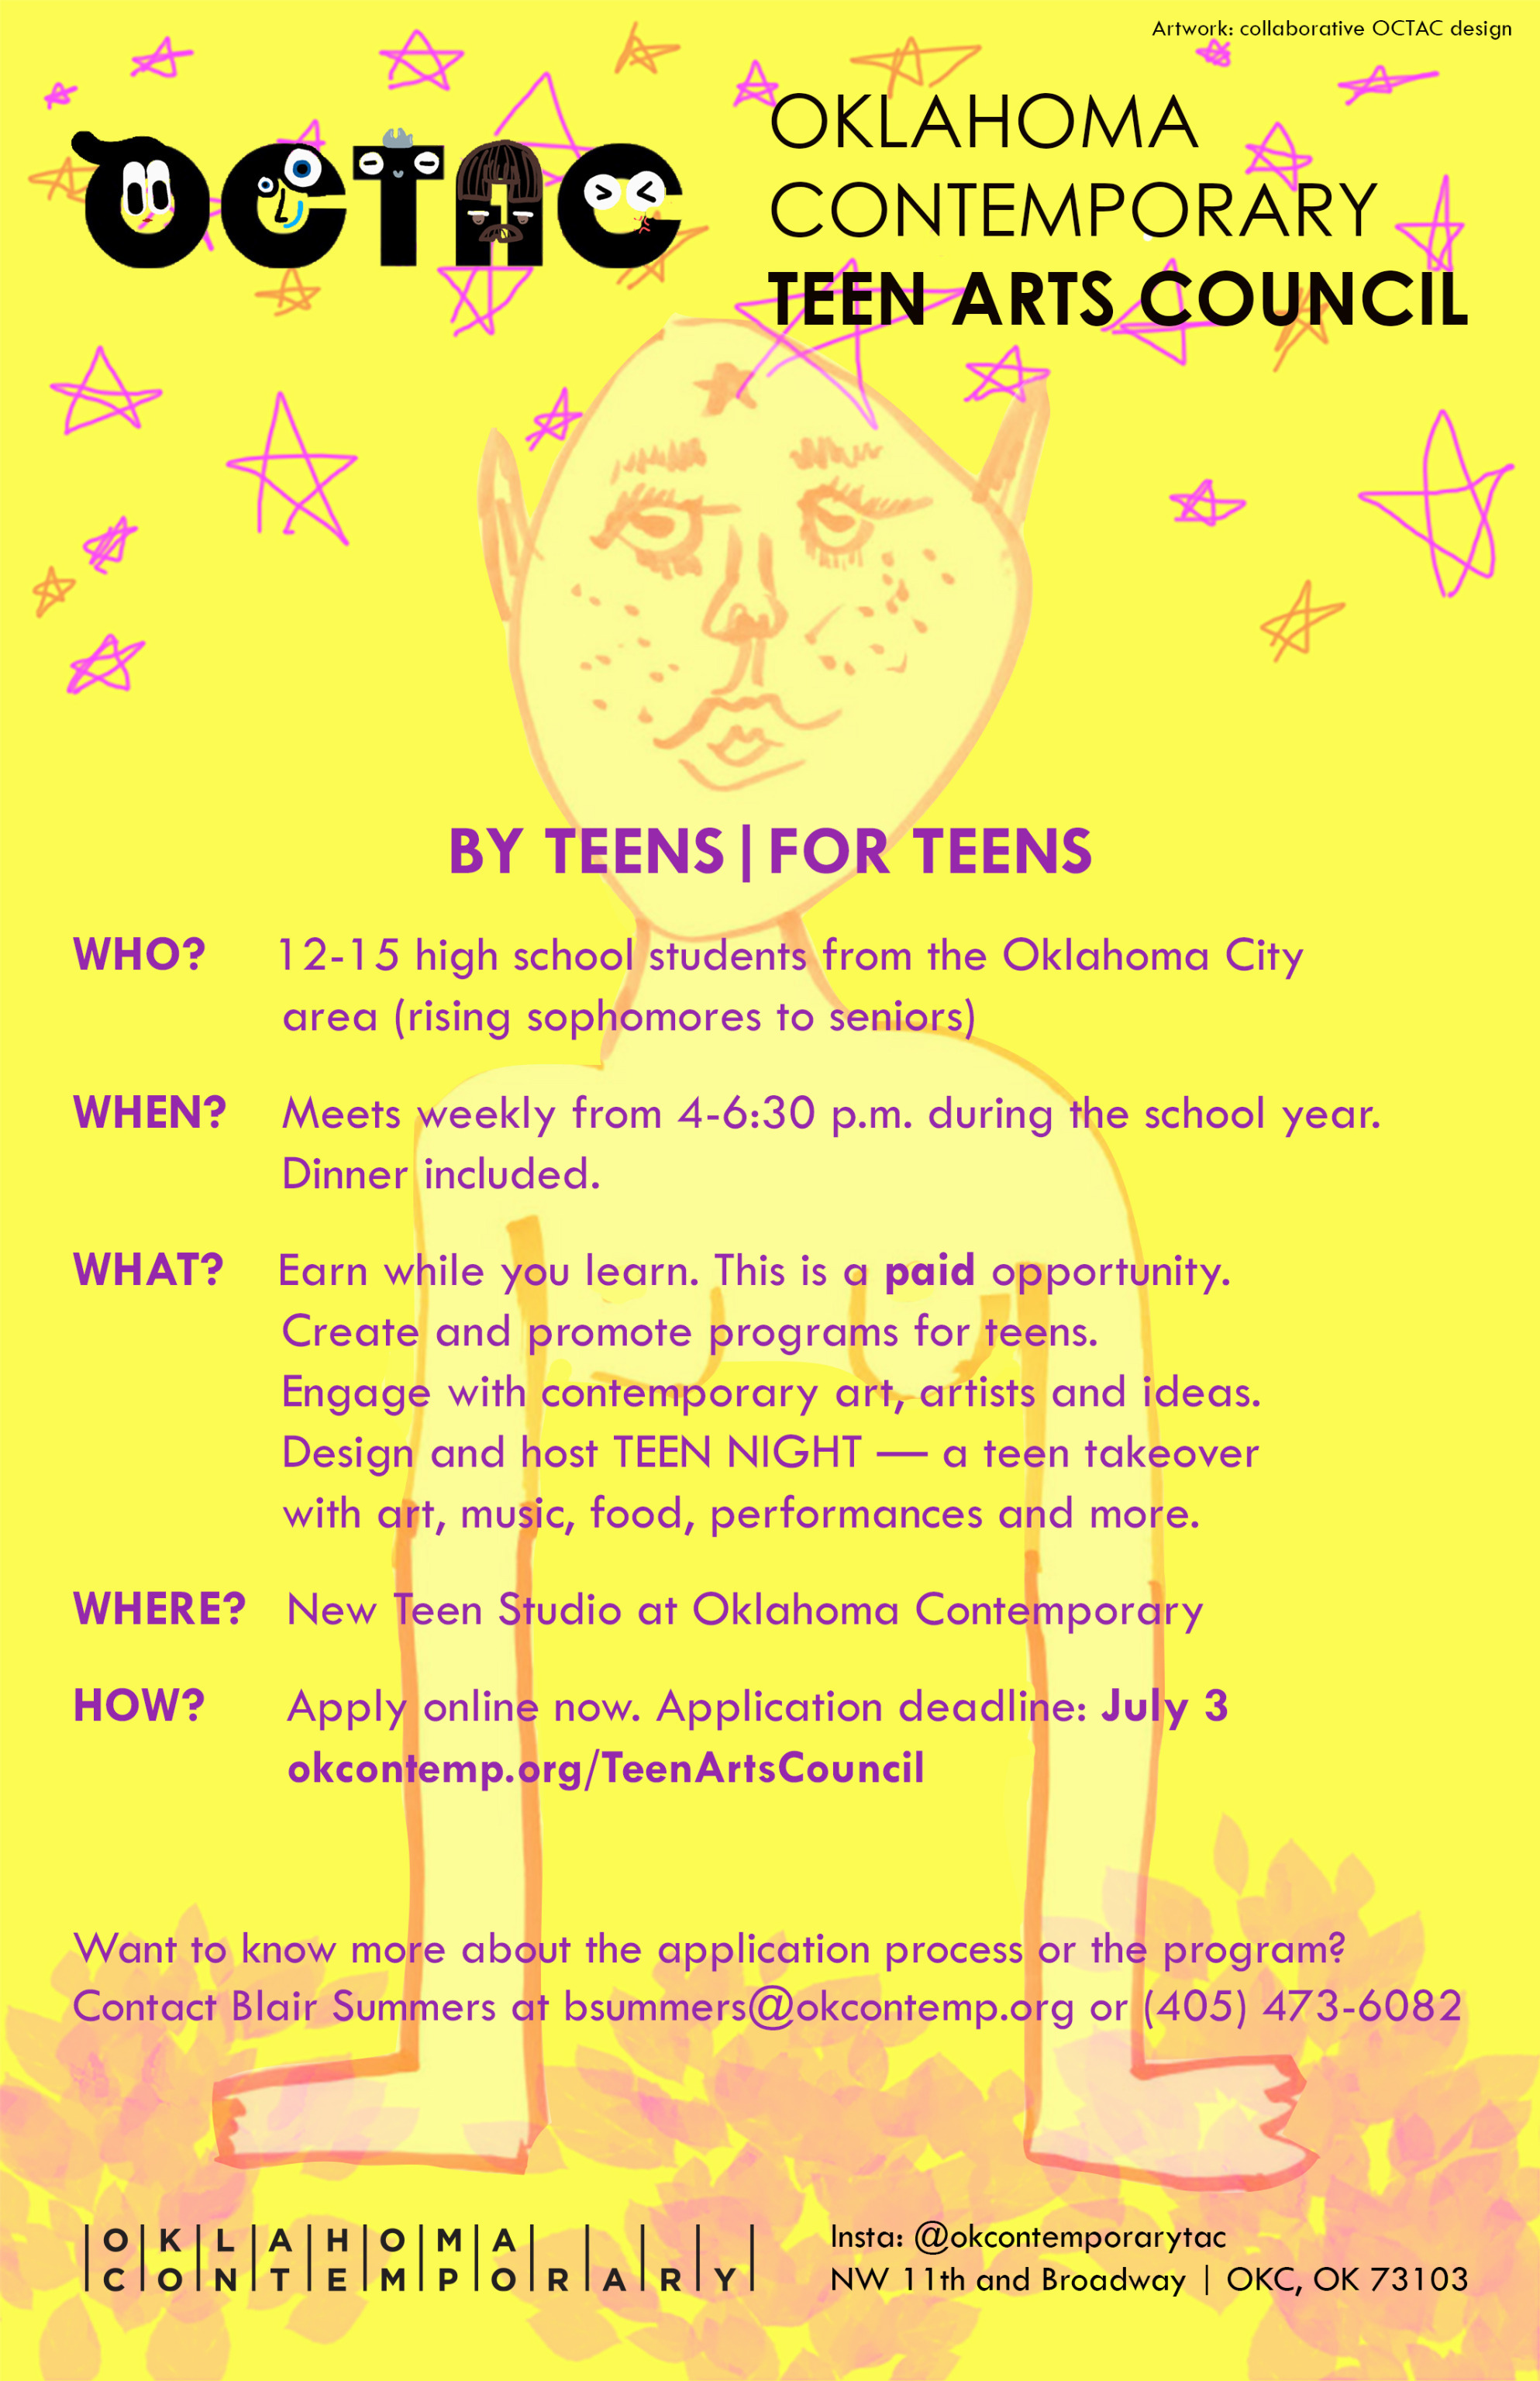 A bright yellow recruitment poster for the Oklahoma Contemporary Teen Arts Council, featuring an abstract handrawn creature surrounded by pink five-point stars